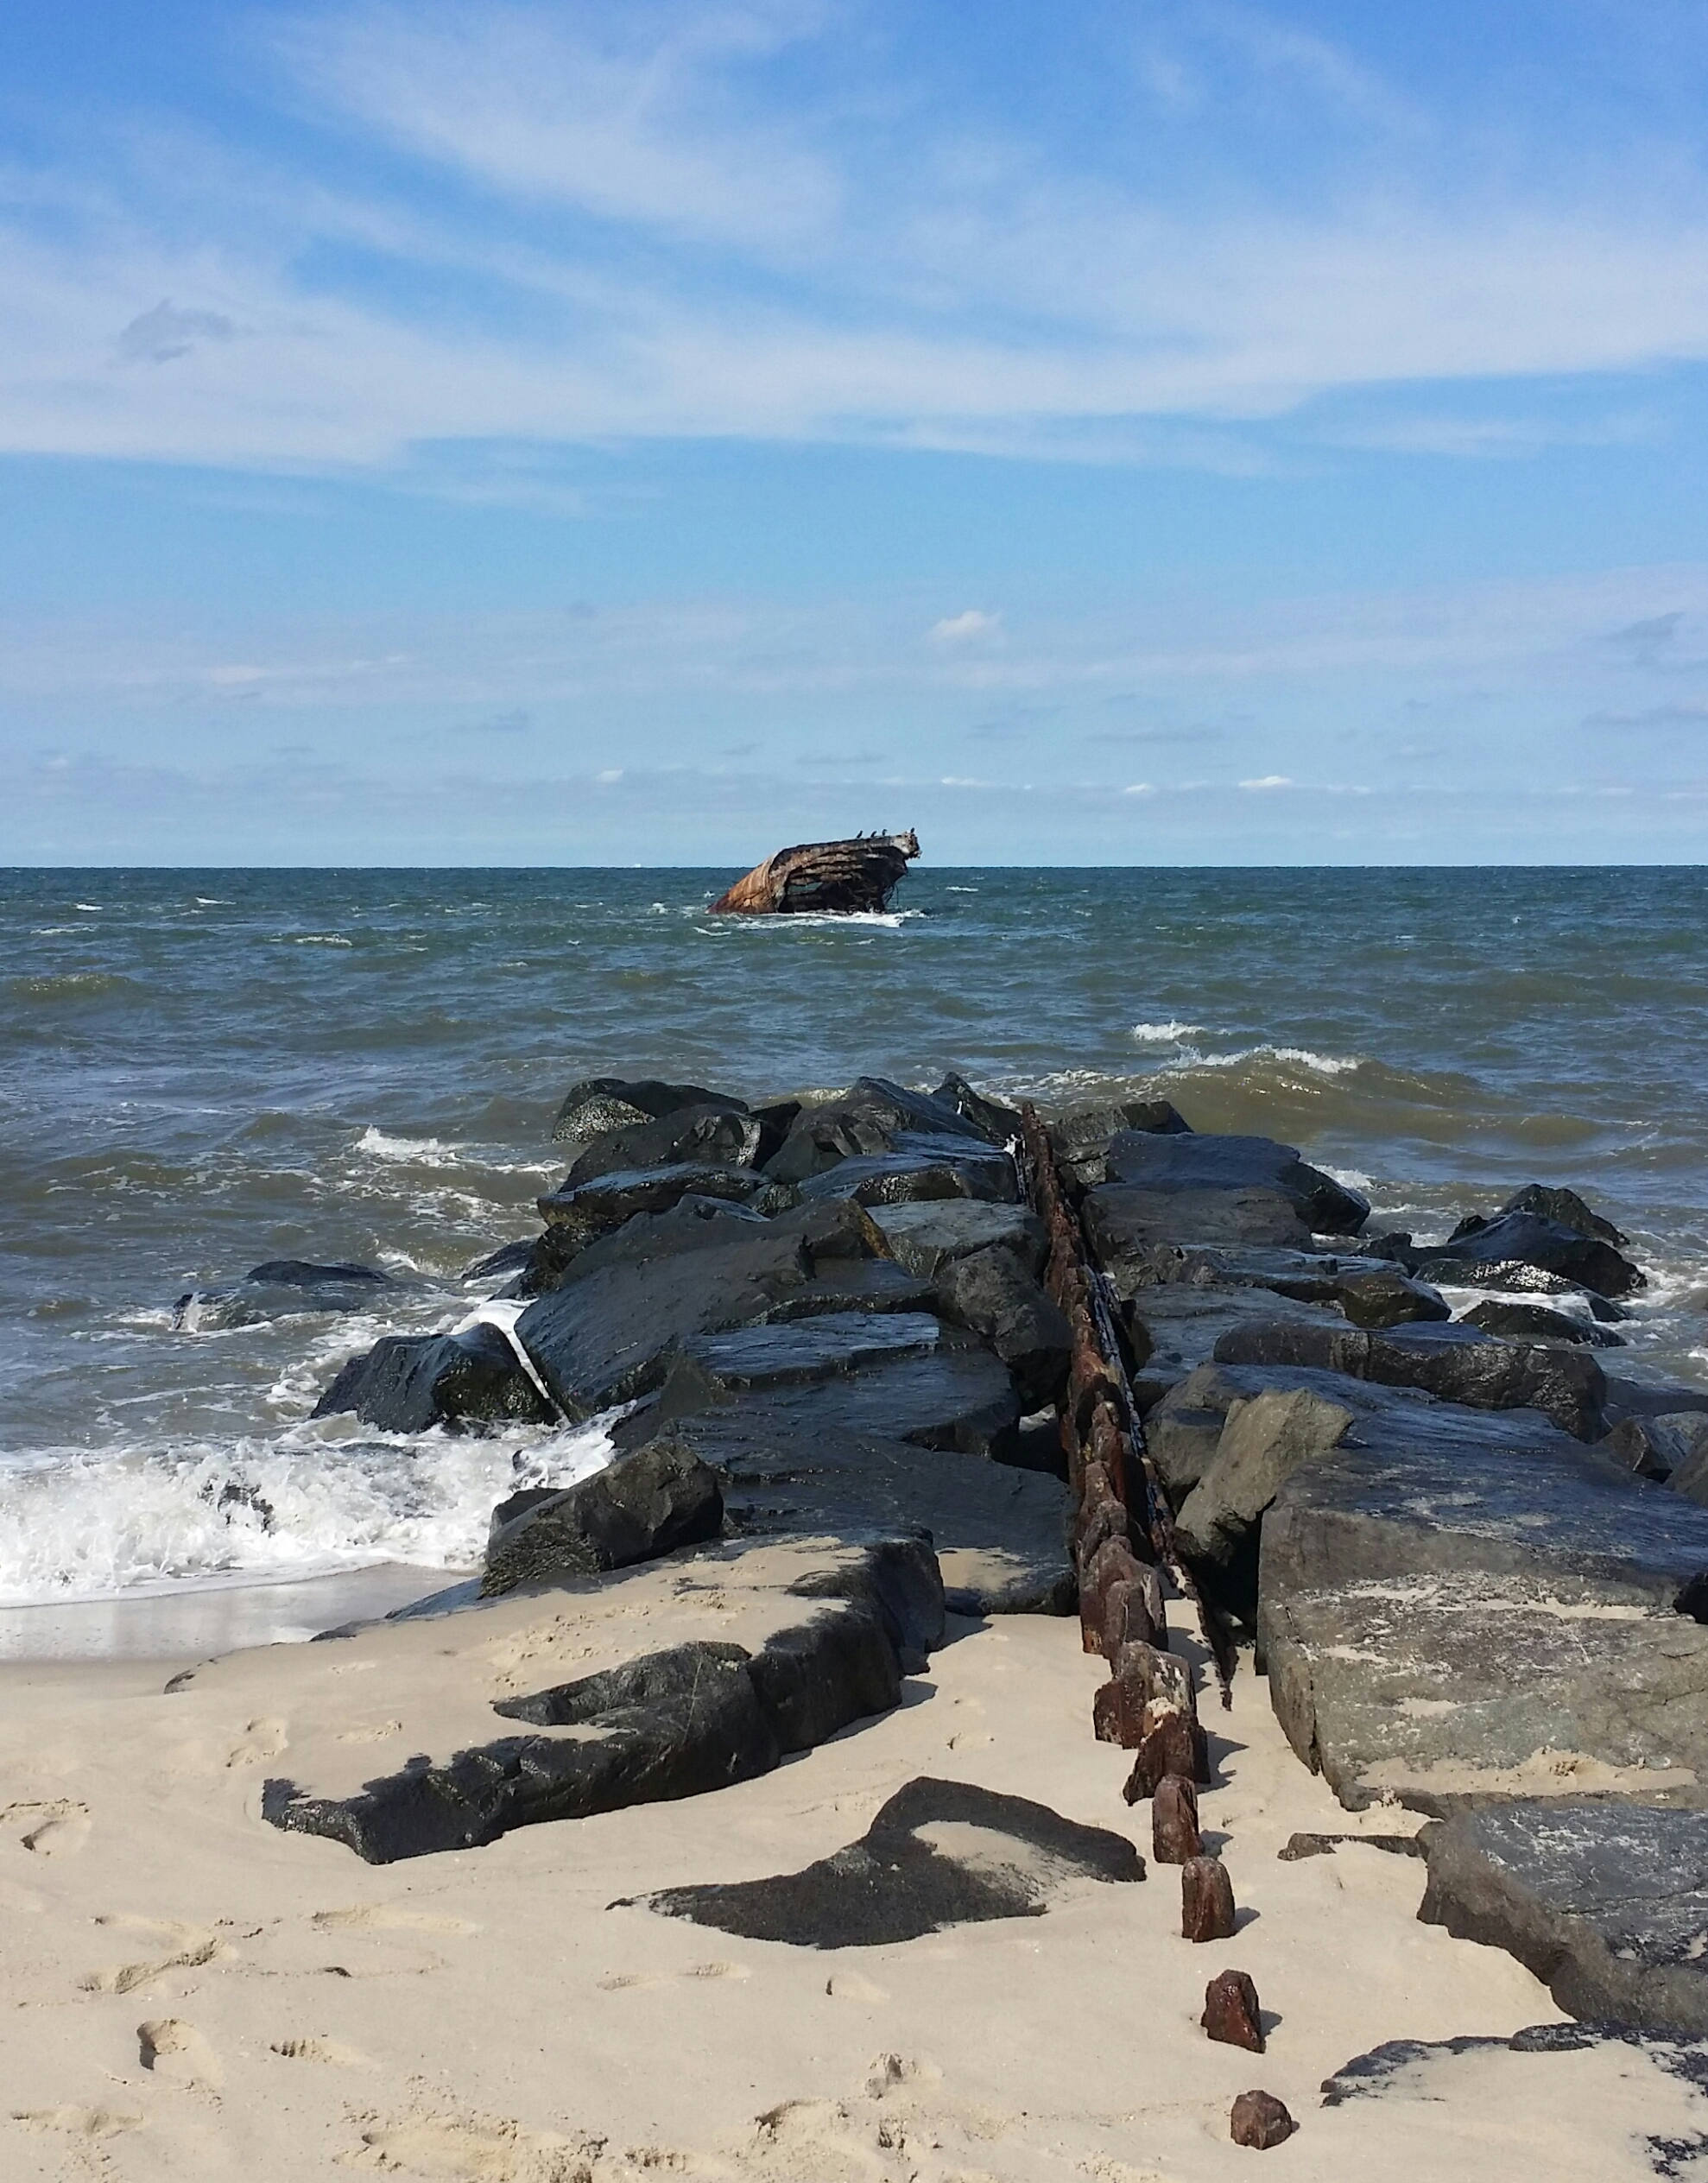 Cape May Shipwreck